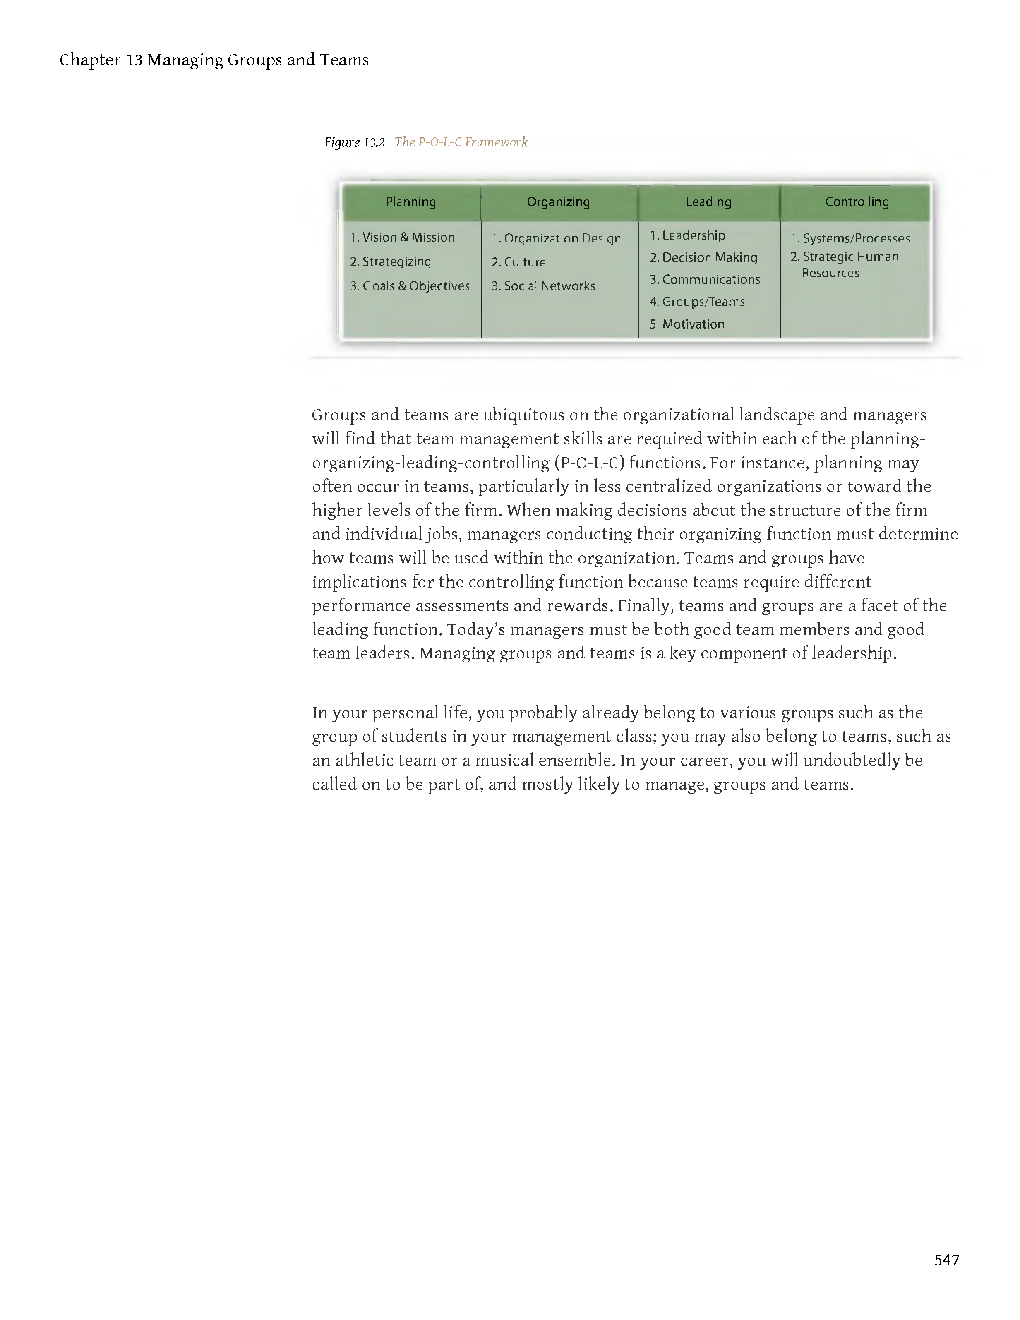 UGC NET Managing Groups And Teams Study Material For Management - Page 3